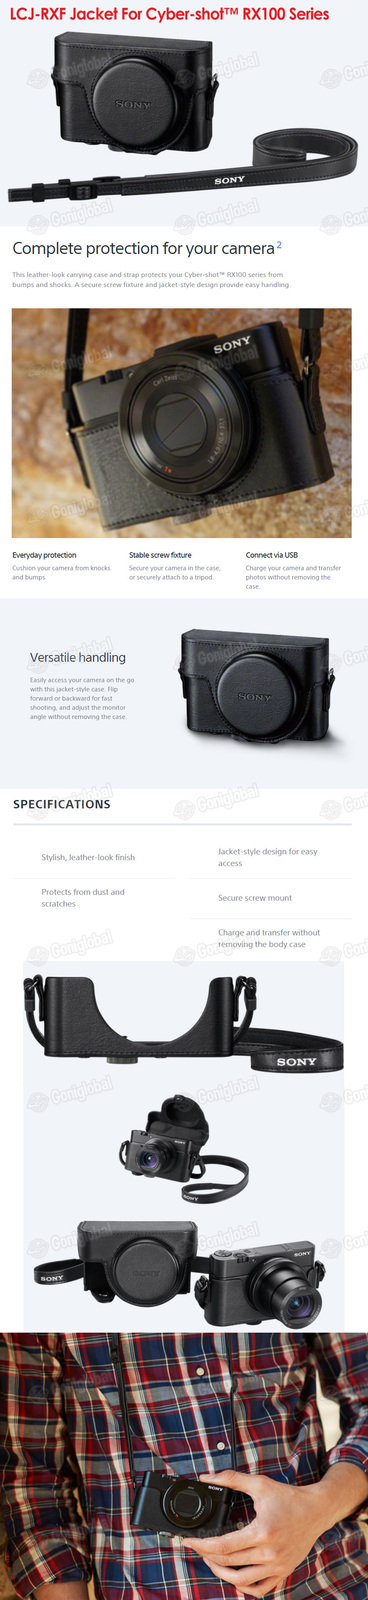 Sony SONY LCJ-RXF Camera Case Jacket For Cyber-shot RX100 Series / Complete Prot